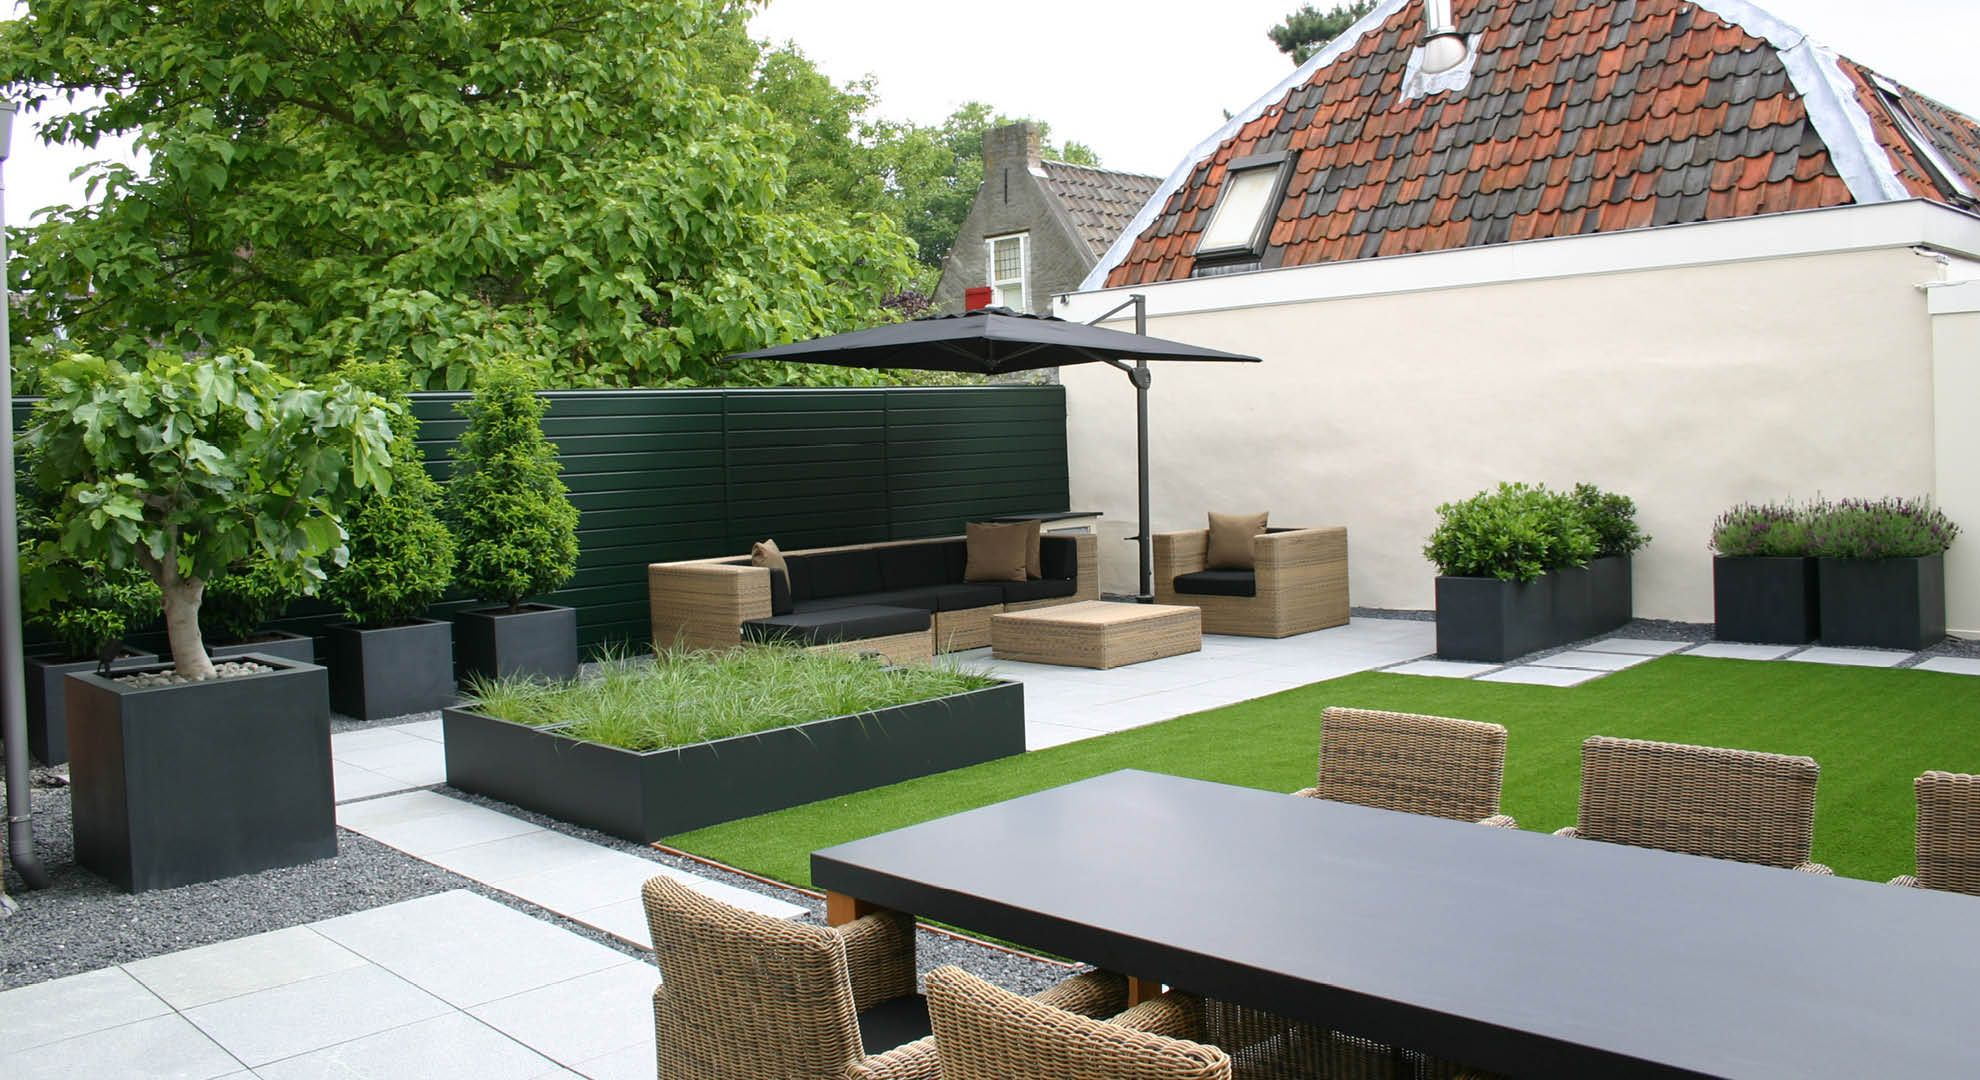 rodenburg tuinen modern dakterras in utrecht met kunstgras en moderne betontegels een. Black Bedroom Furniture Sets. Home Design Ideas